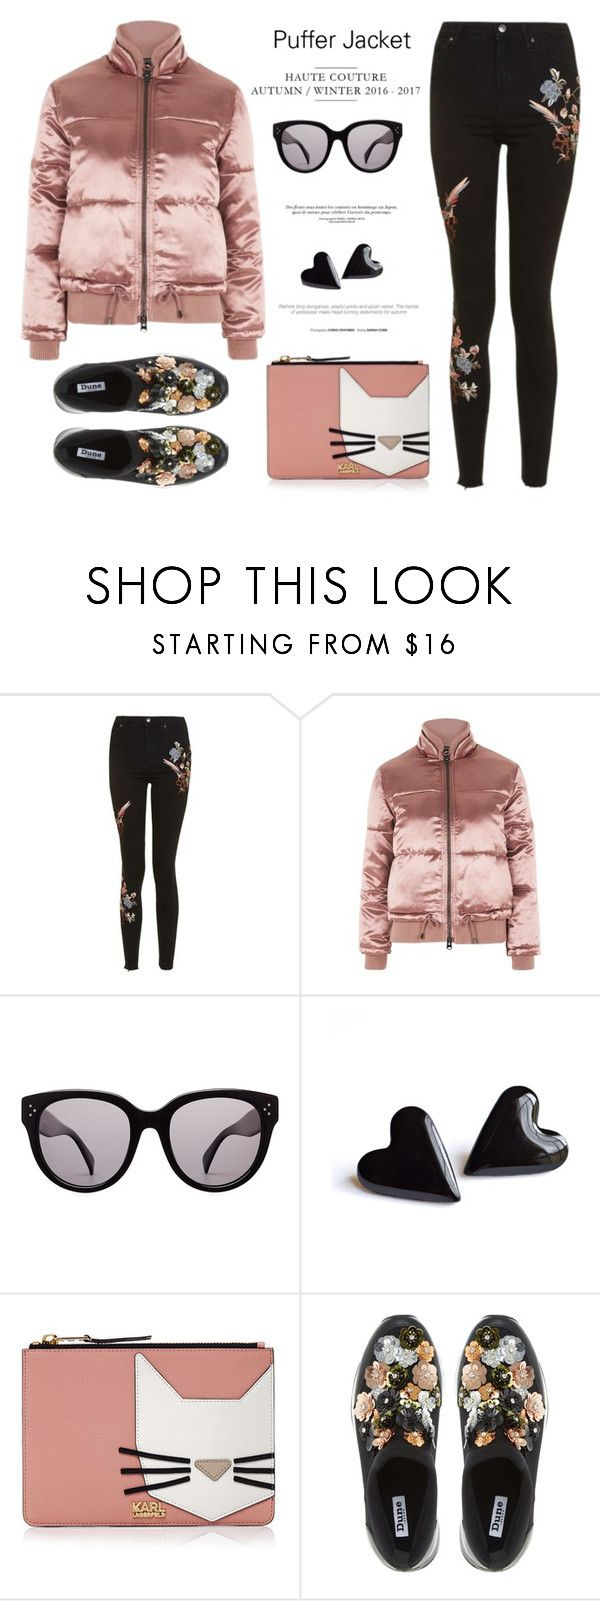 """""""Puffer Jacket"""" by rasa-j ❤ liked on Polyvore featuring Topshop, CÉLINE, Karl Lagerfeld, Dune, womensFashion and puffers"""